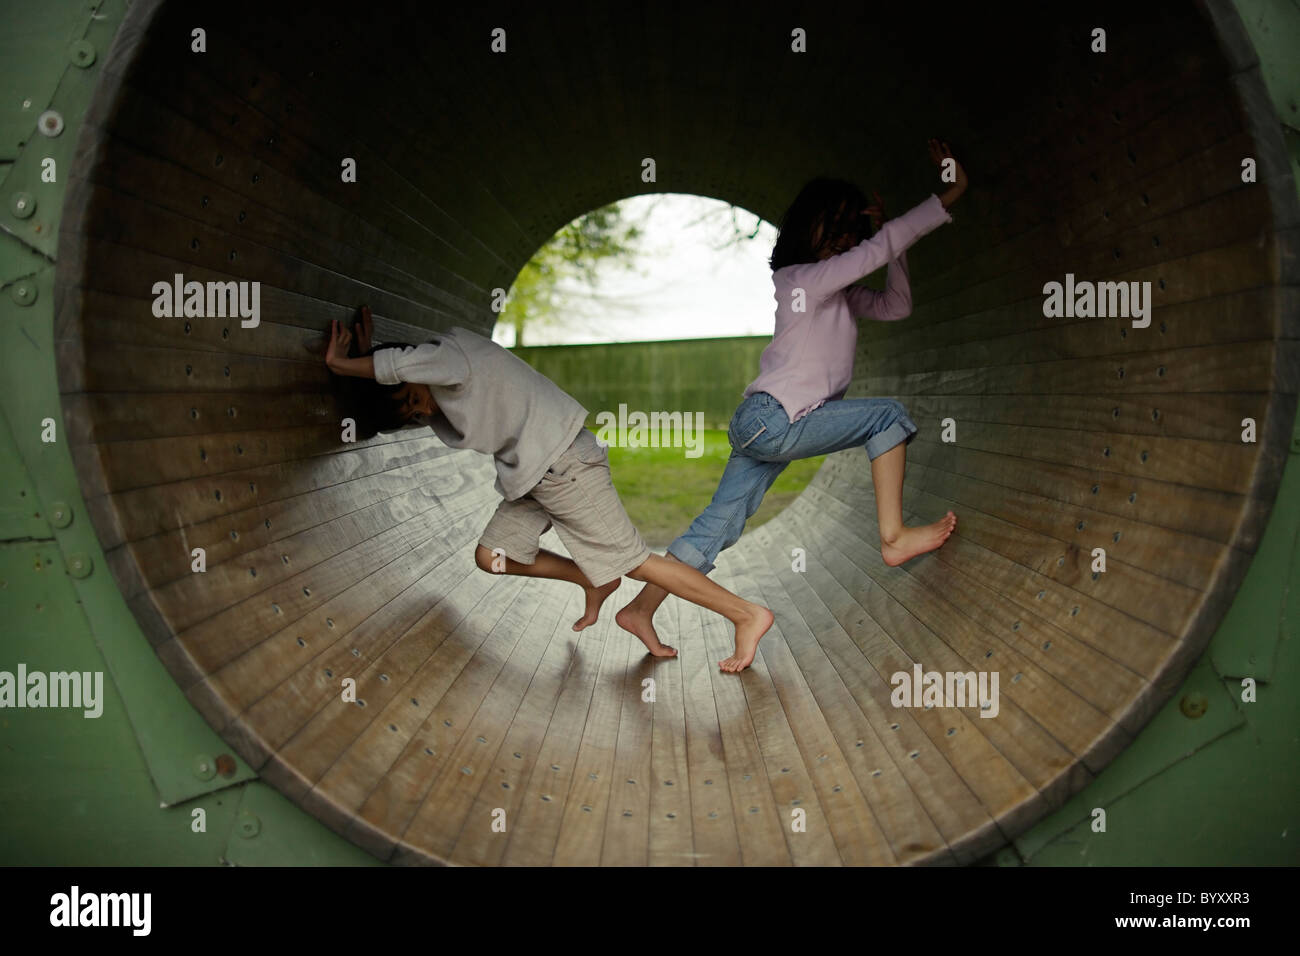 Not Teamwork. Boy and girl try to turn playground hamster wheel in opposite directions. Public playground, New Zealand. - Stock Image